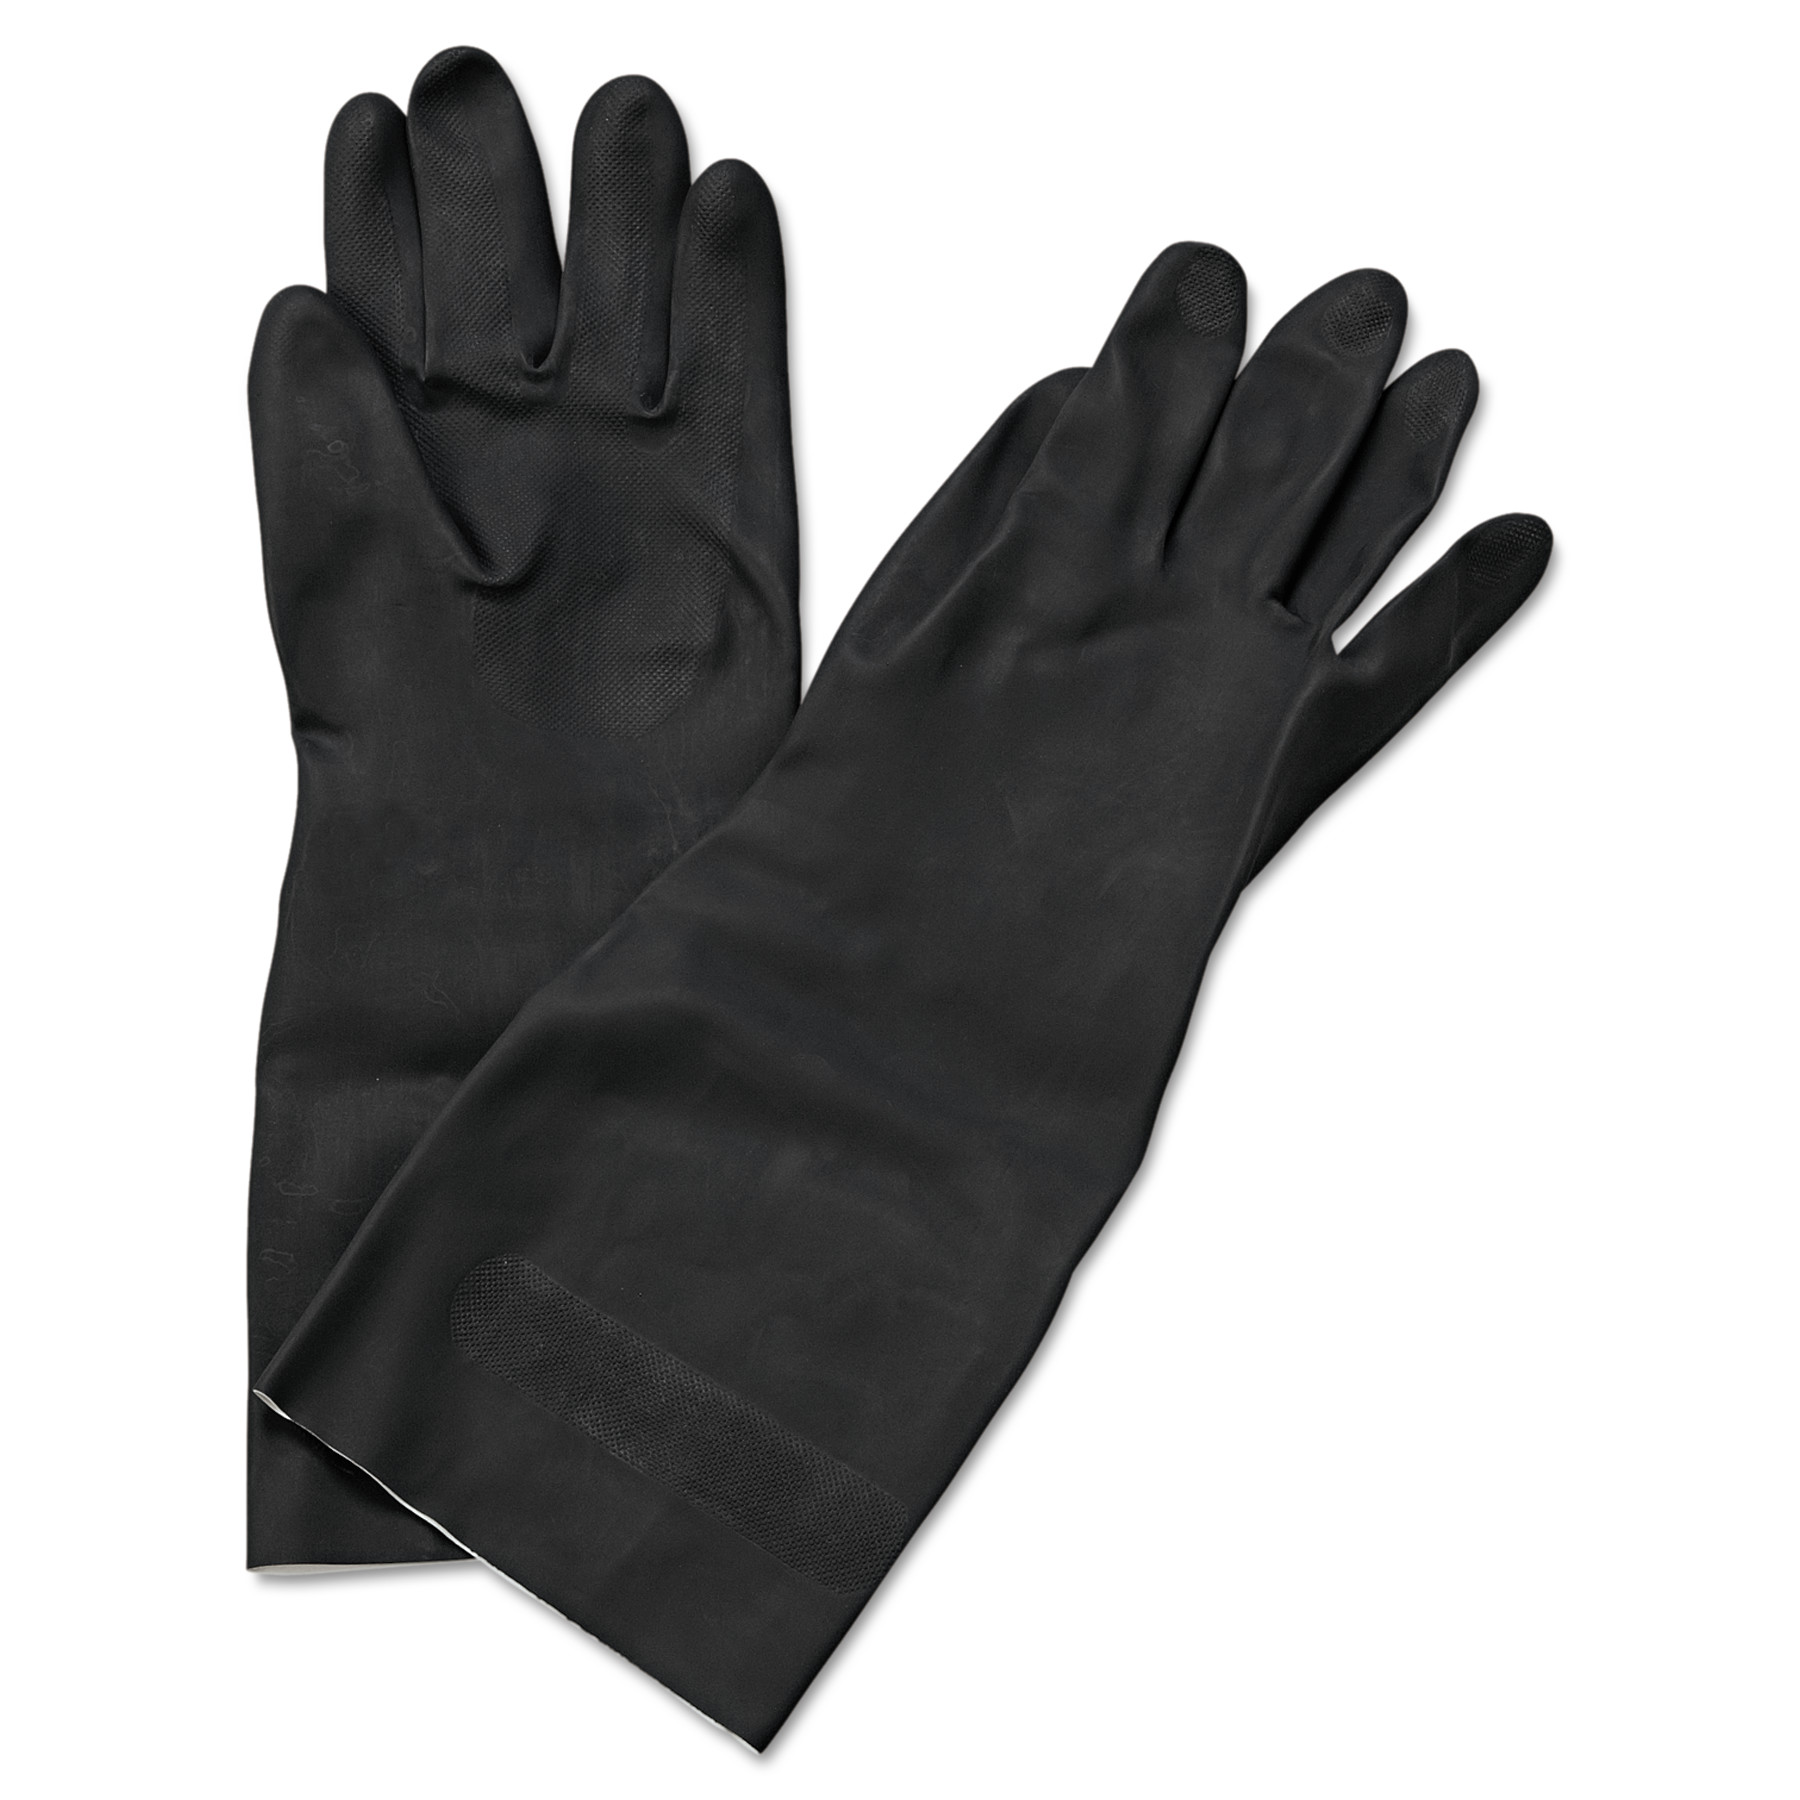 "Boardwalk Neoprene Flock-Lined Gloves, Long-Sleeved, 12"", Large, Black, Dozen -BWK543L"